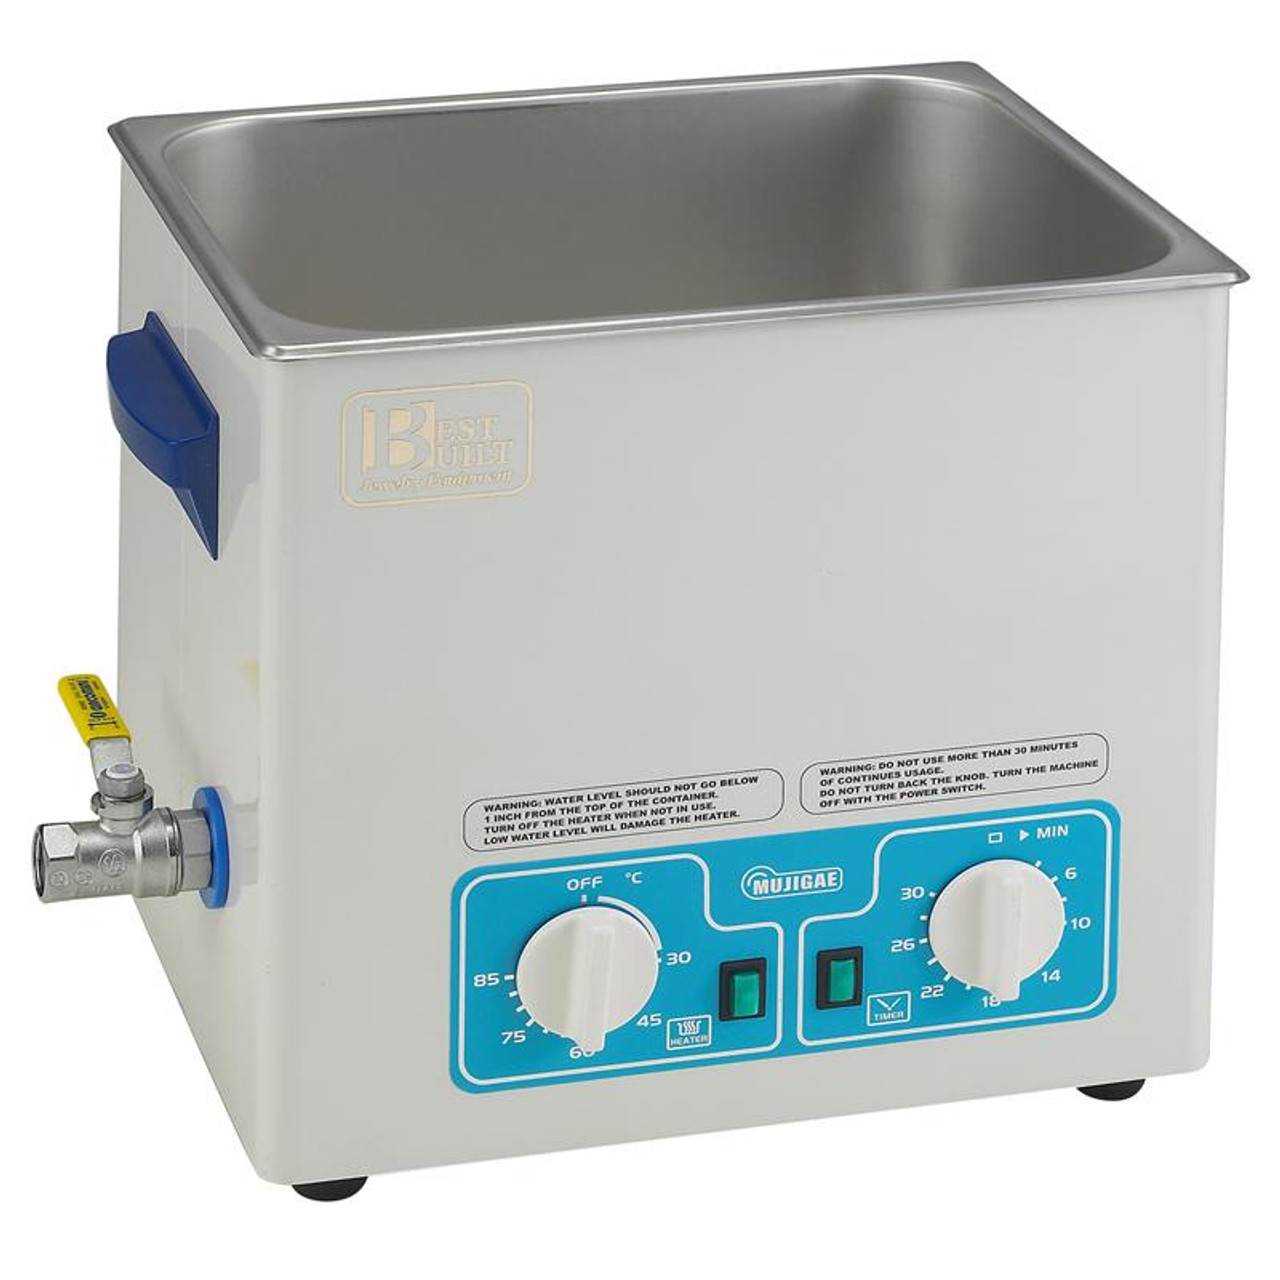 Best Built 2 6 Gallon Ultrasonic Jewelry And Watch Parts Cleaner 10 5 Qt 10 Liter With Heater Timer Drain